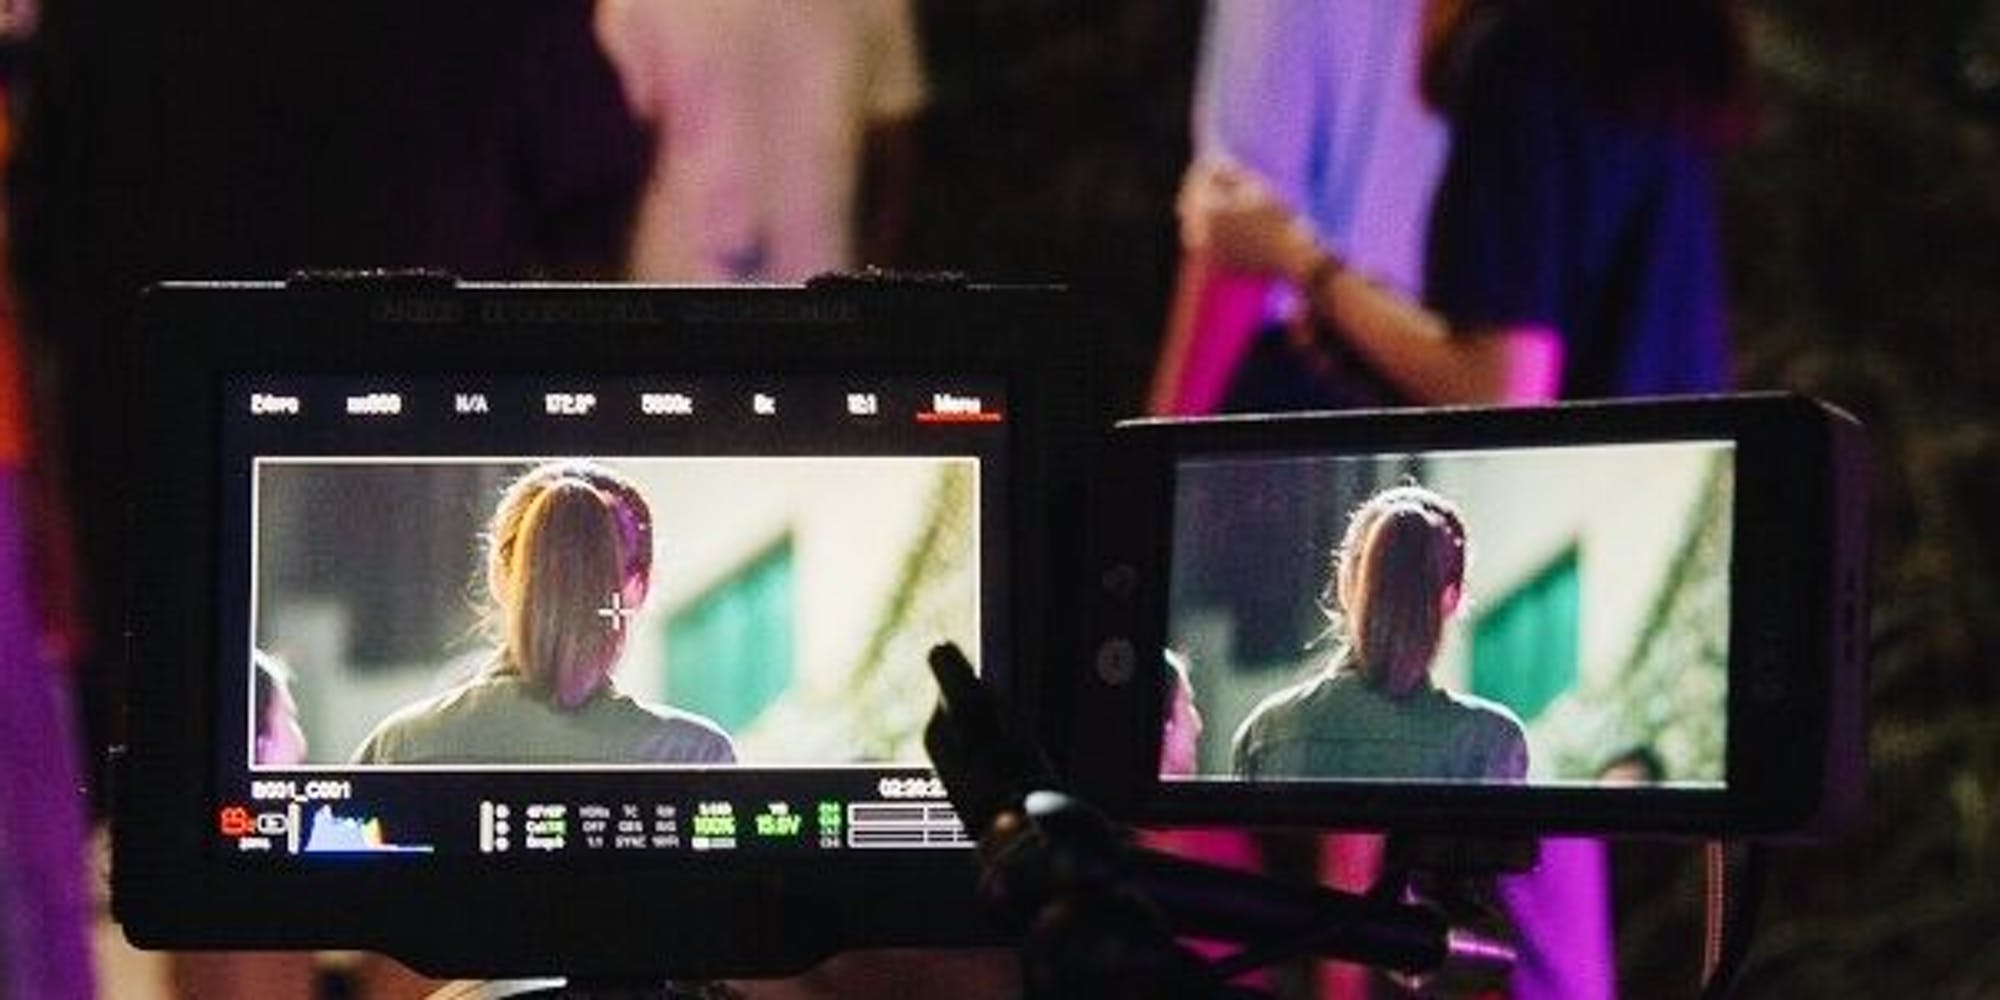 Behind the scenes of Glitch!